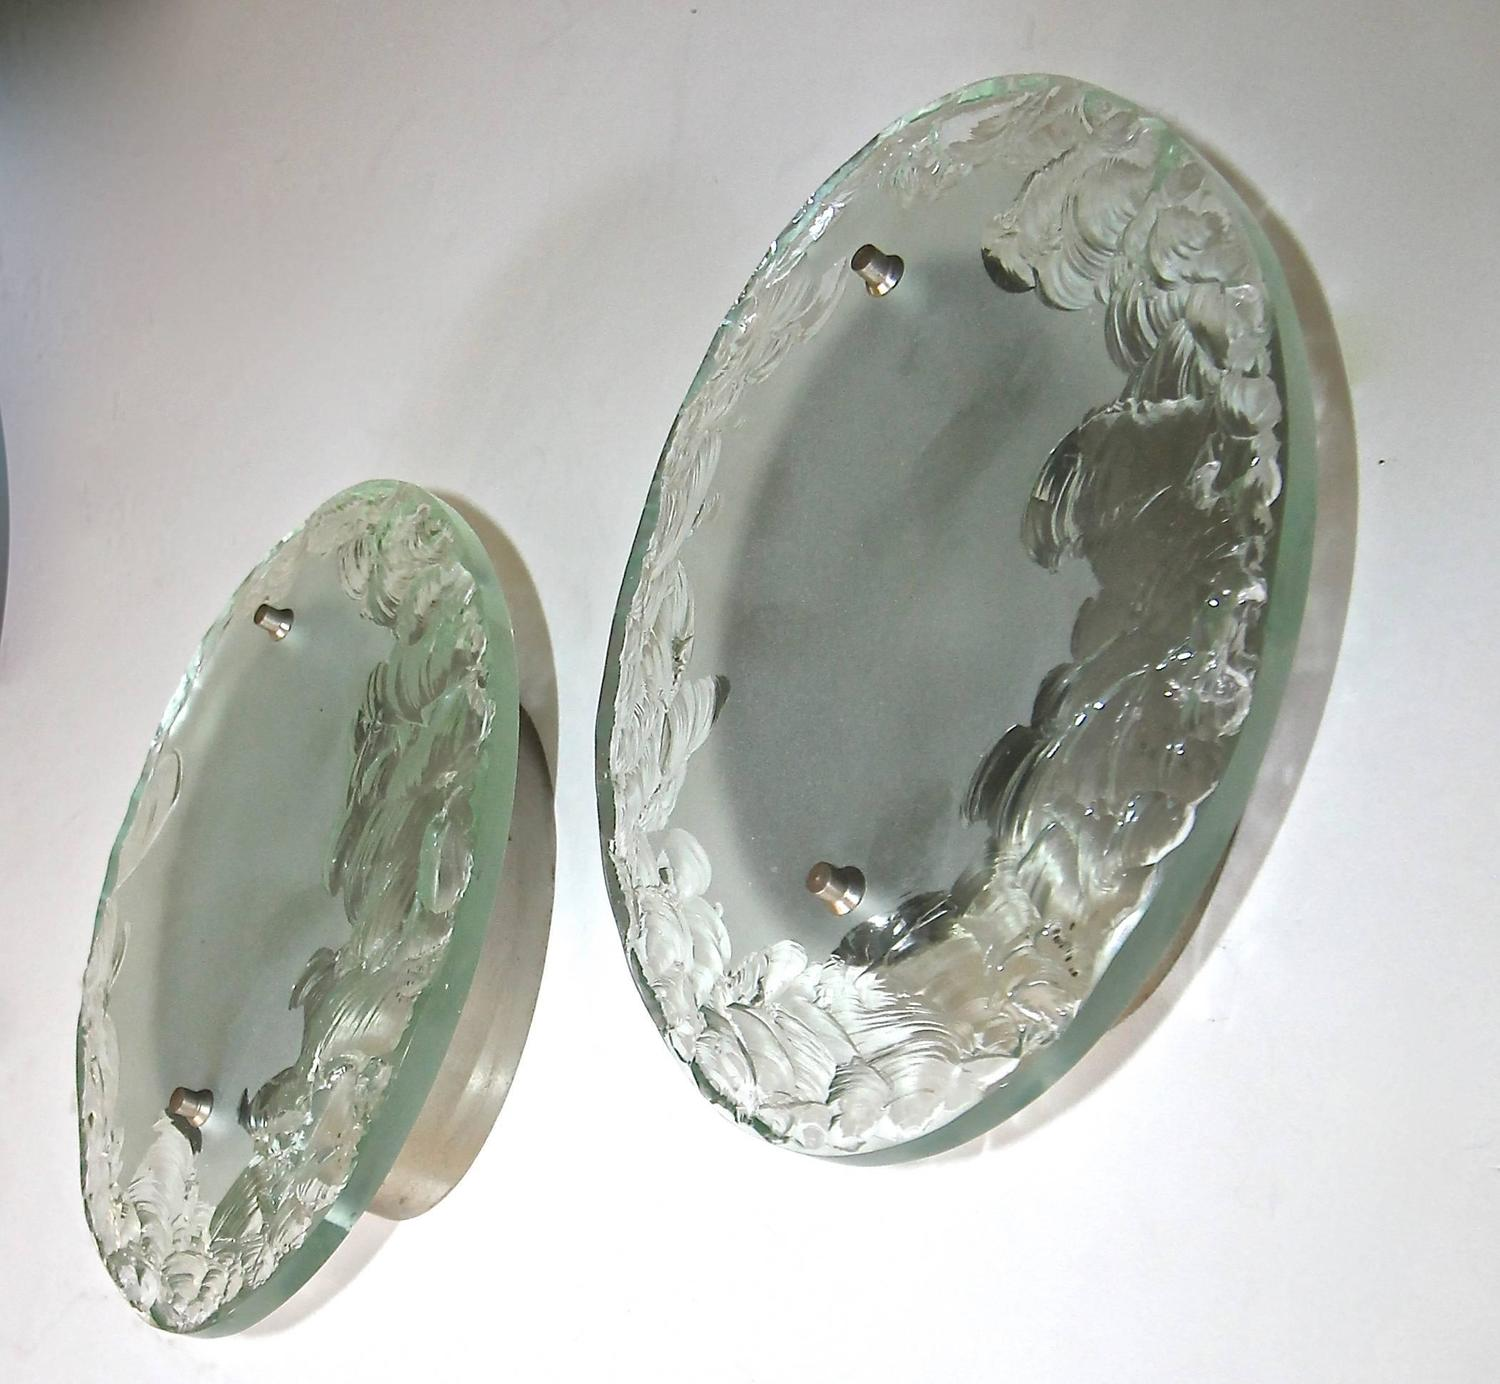 Pair of Italian Fontana Arte Style Broken Glass Wall Sconces For Sale at 1stdibs